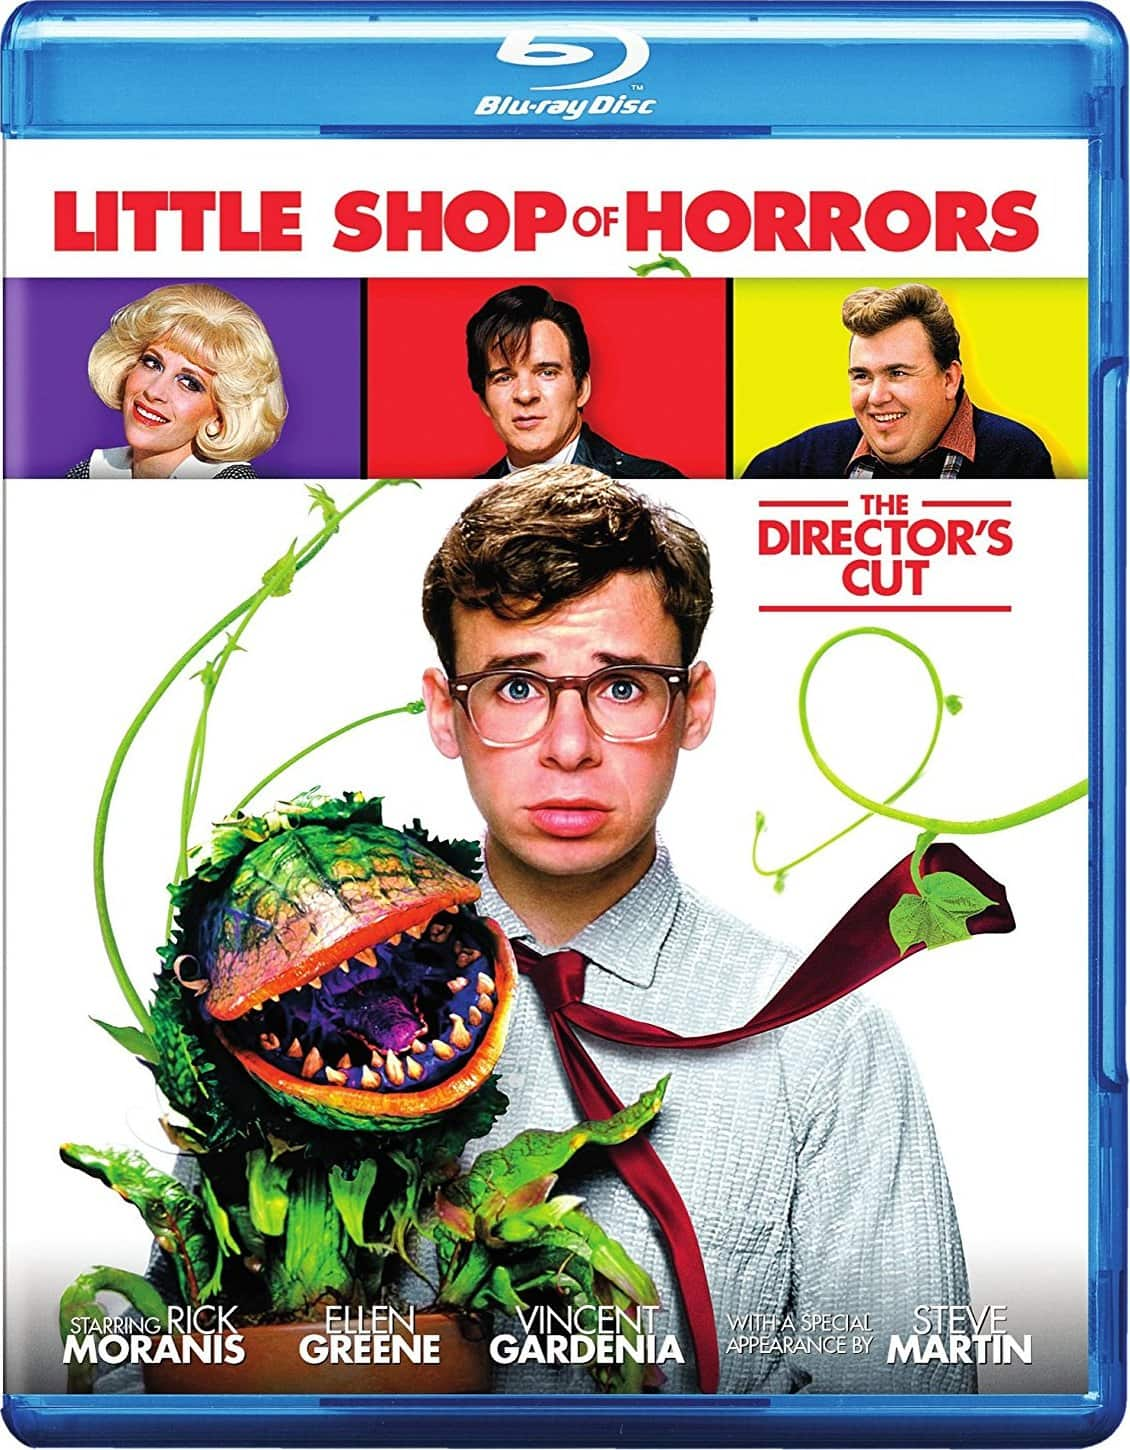 Little Shop of Horrors: The Director's Cut + Theatrical (BD) [Blu-ray] $9.99 - $9.99